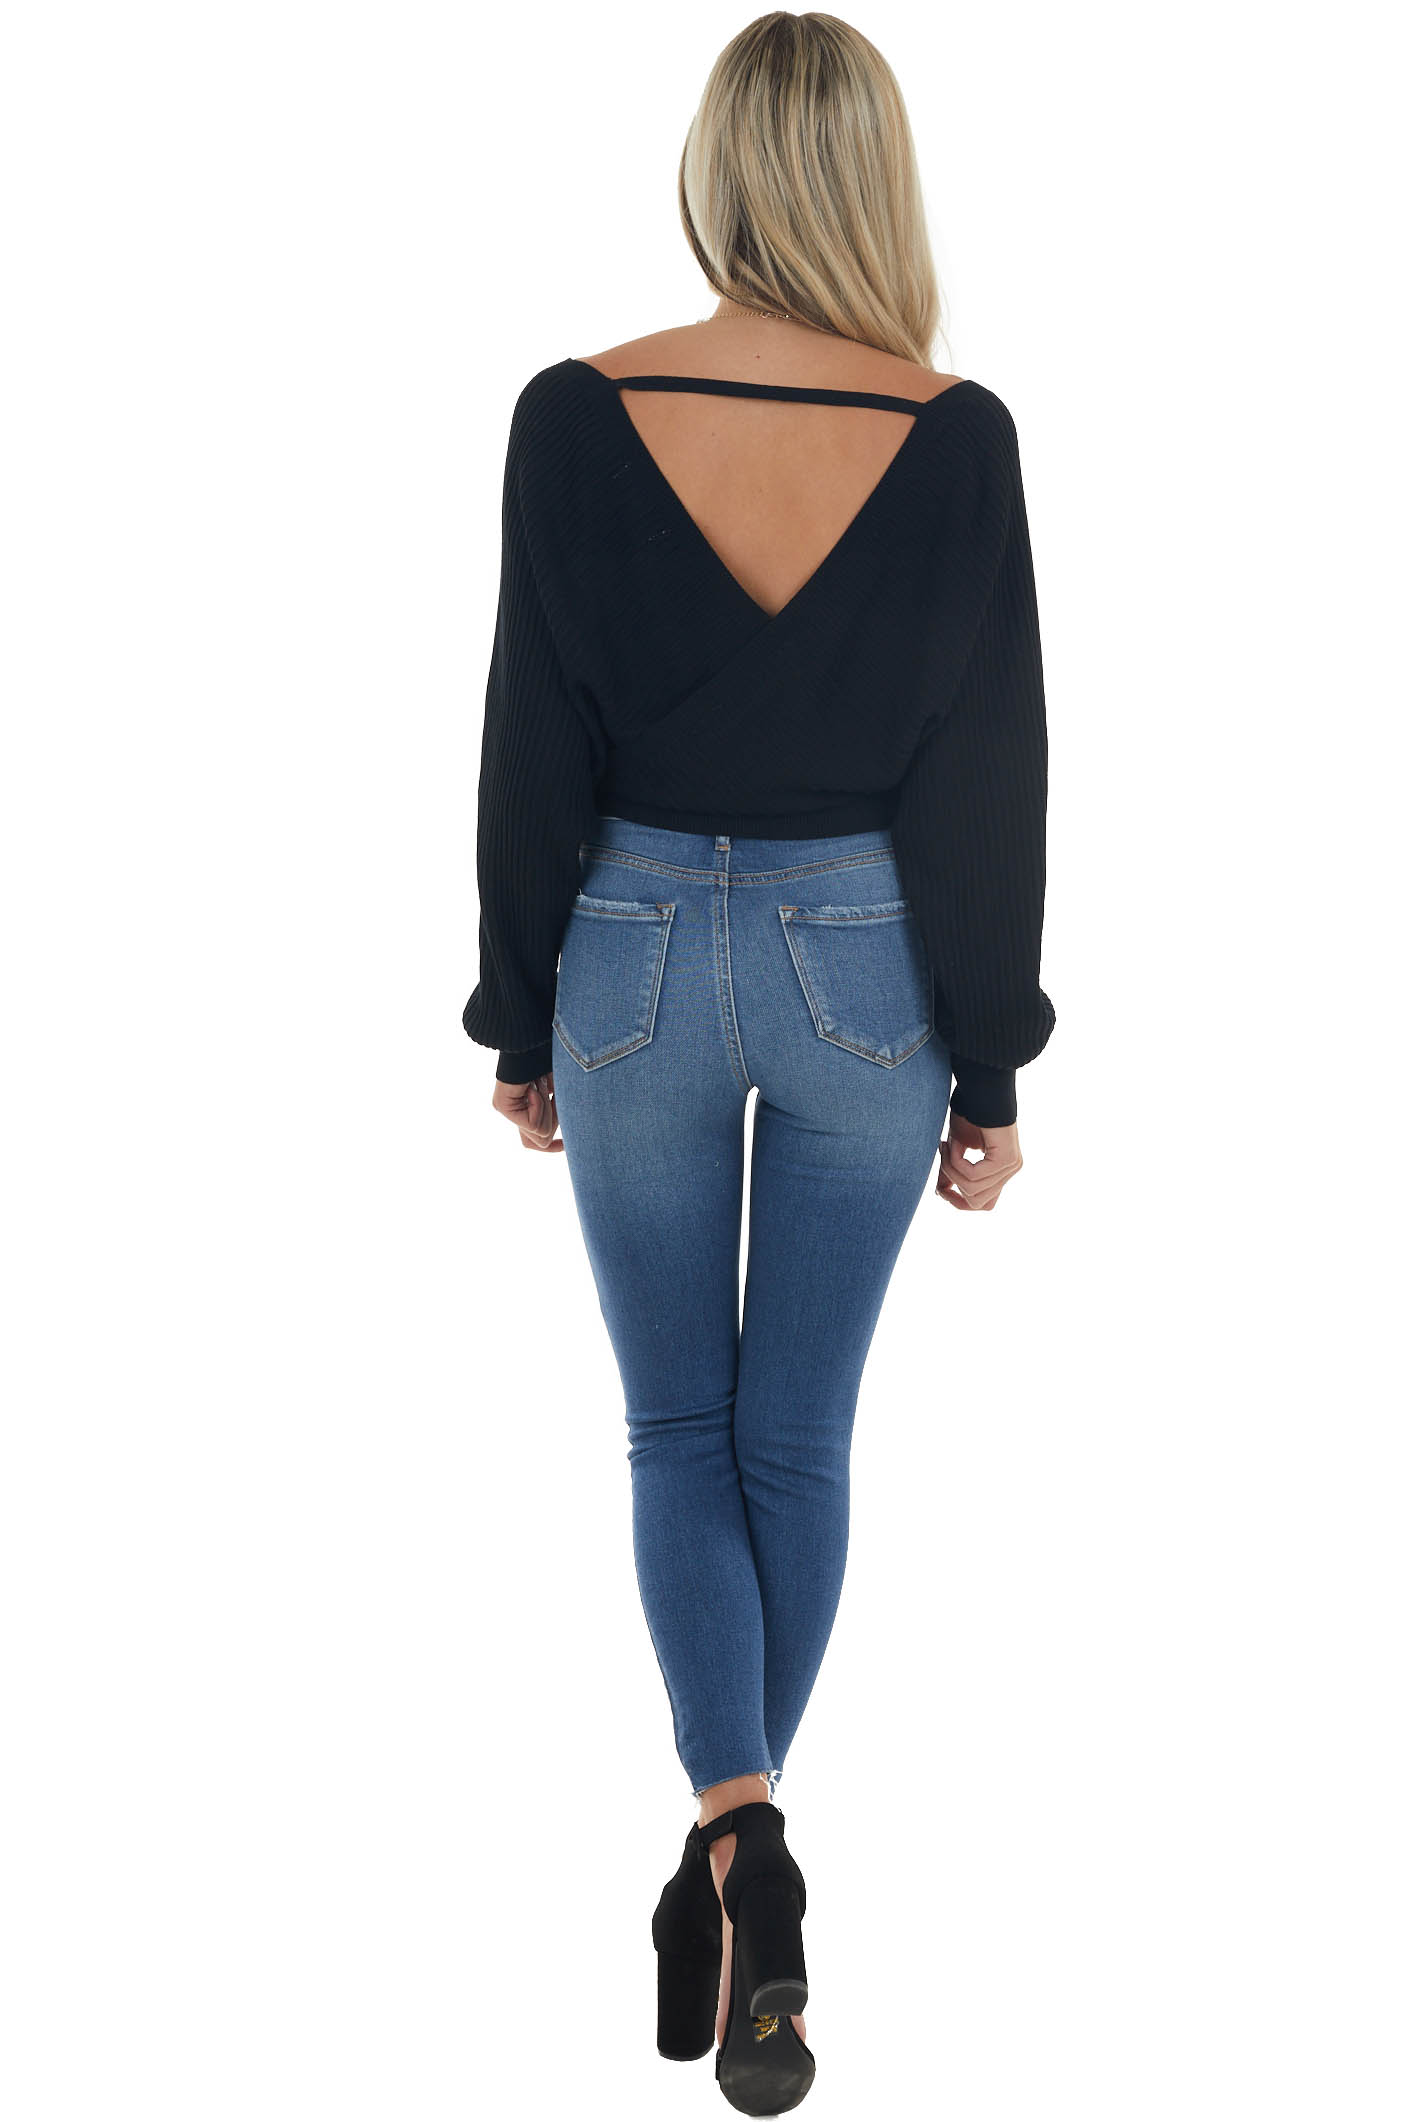 Black Surplice Ribbed Cropped Sweater with Tie